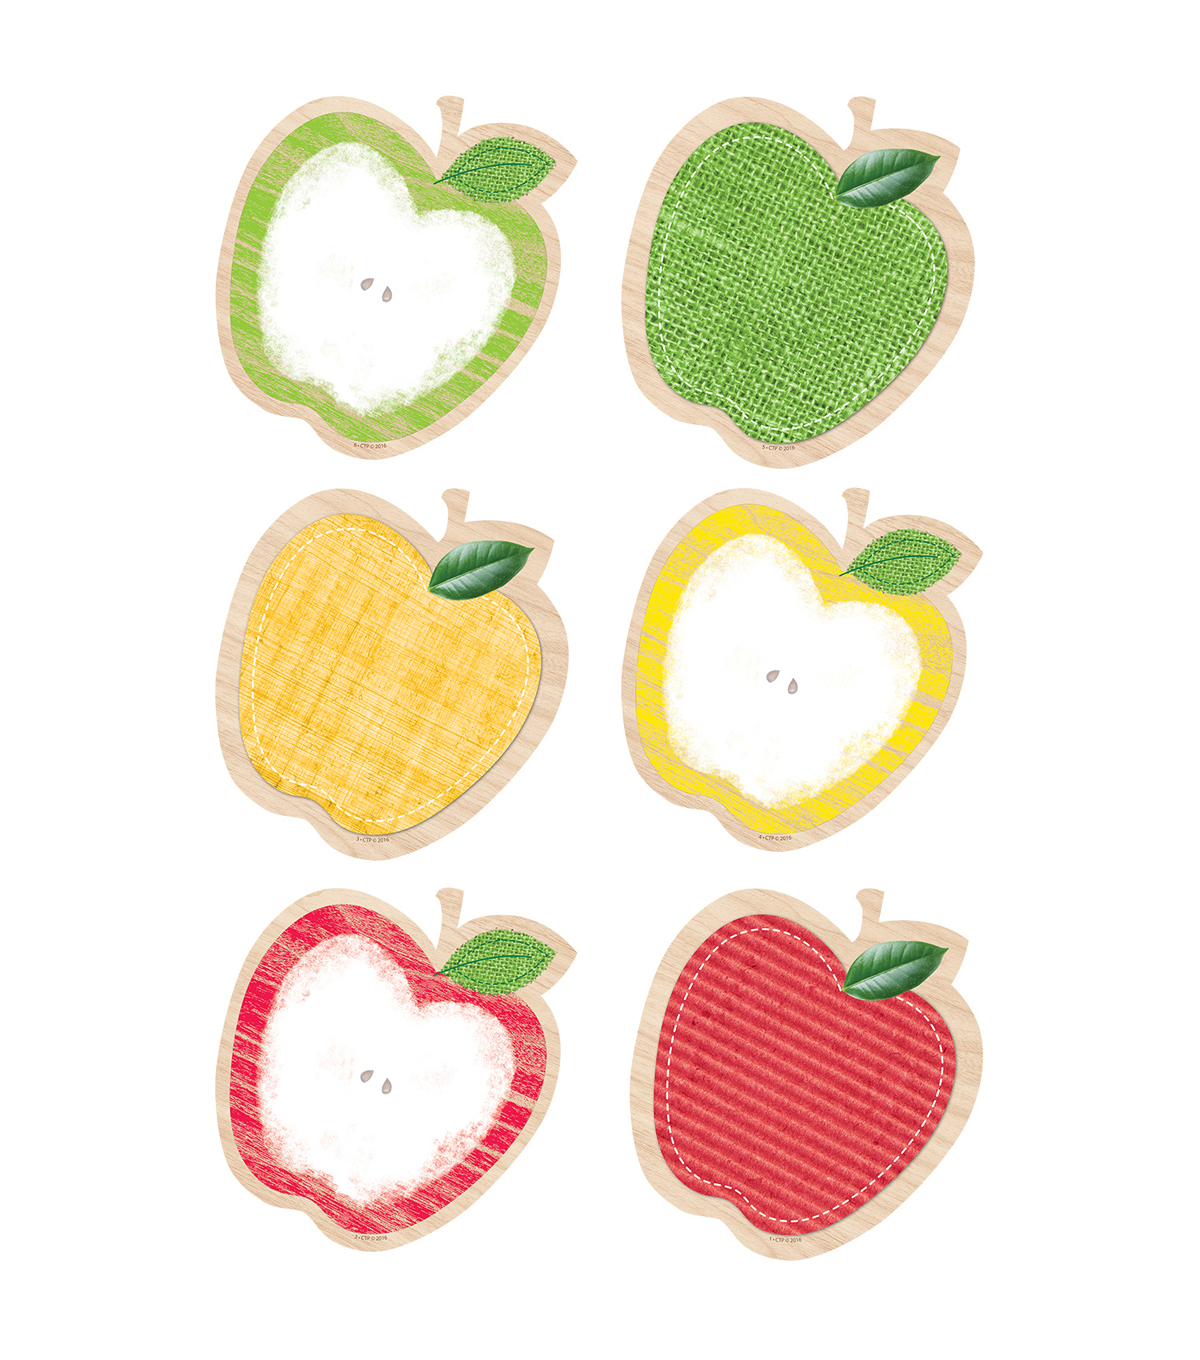 Creative Teaching Press Upcycle Style Apples 10\u0022, 12 Per Pack, 3 Packs